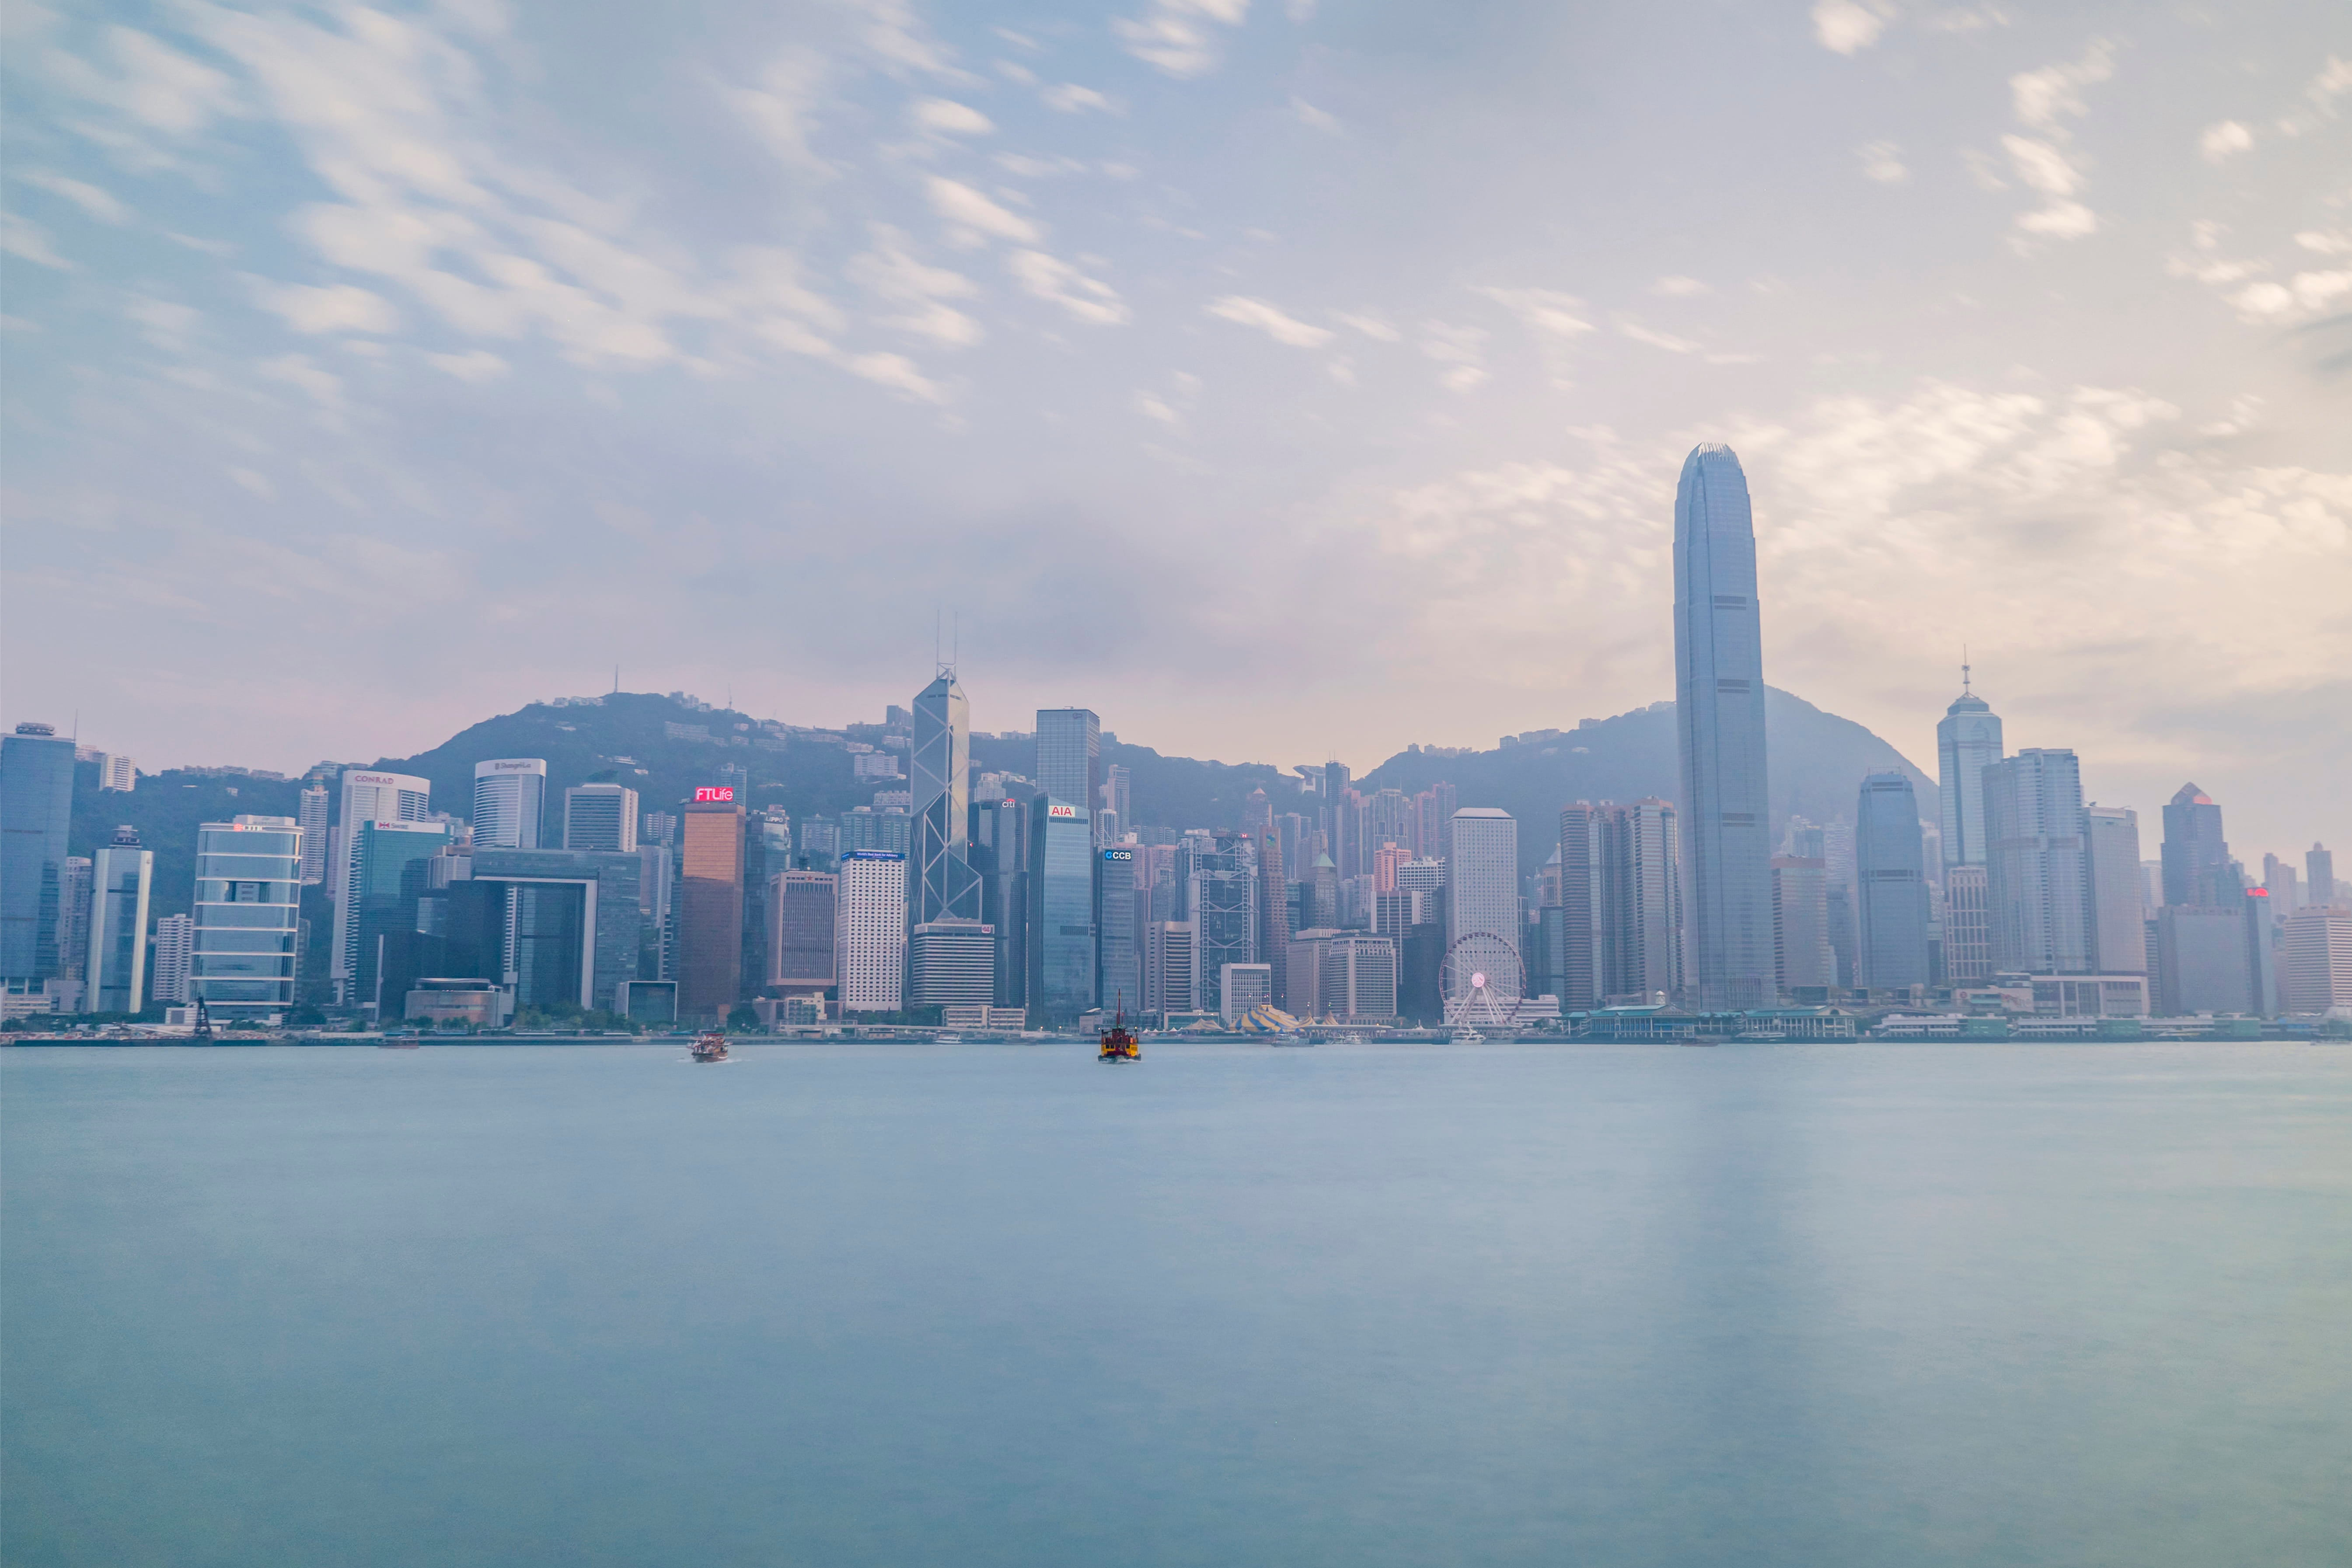 A photograph of the Hong Kong skyline, with lots of skyscrapers lined up along the water's edge.